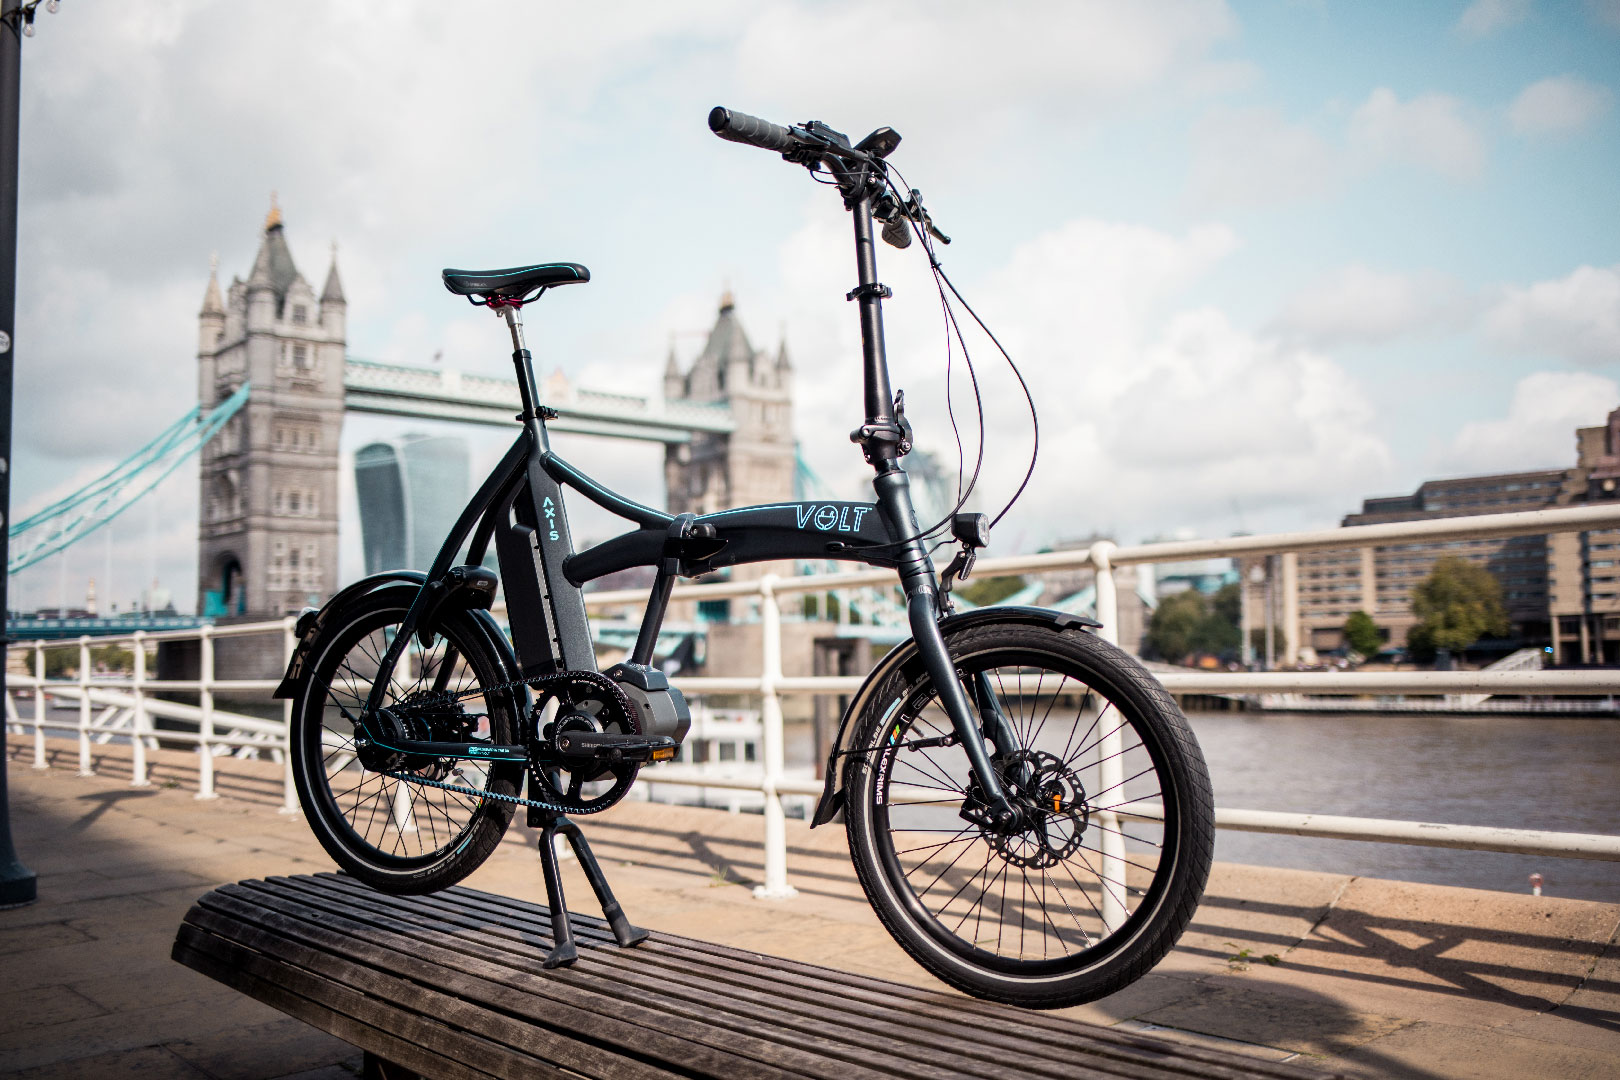 Volt Axis Folding Shimano STEPS ebike in front of Tower Bridge